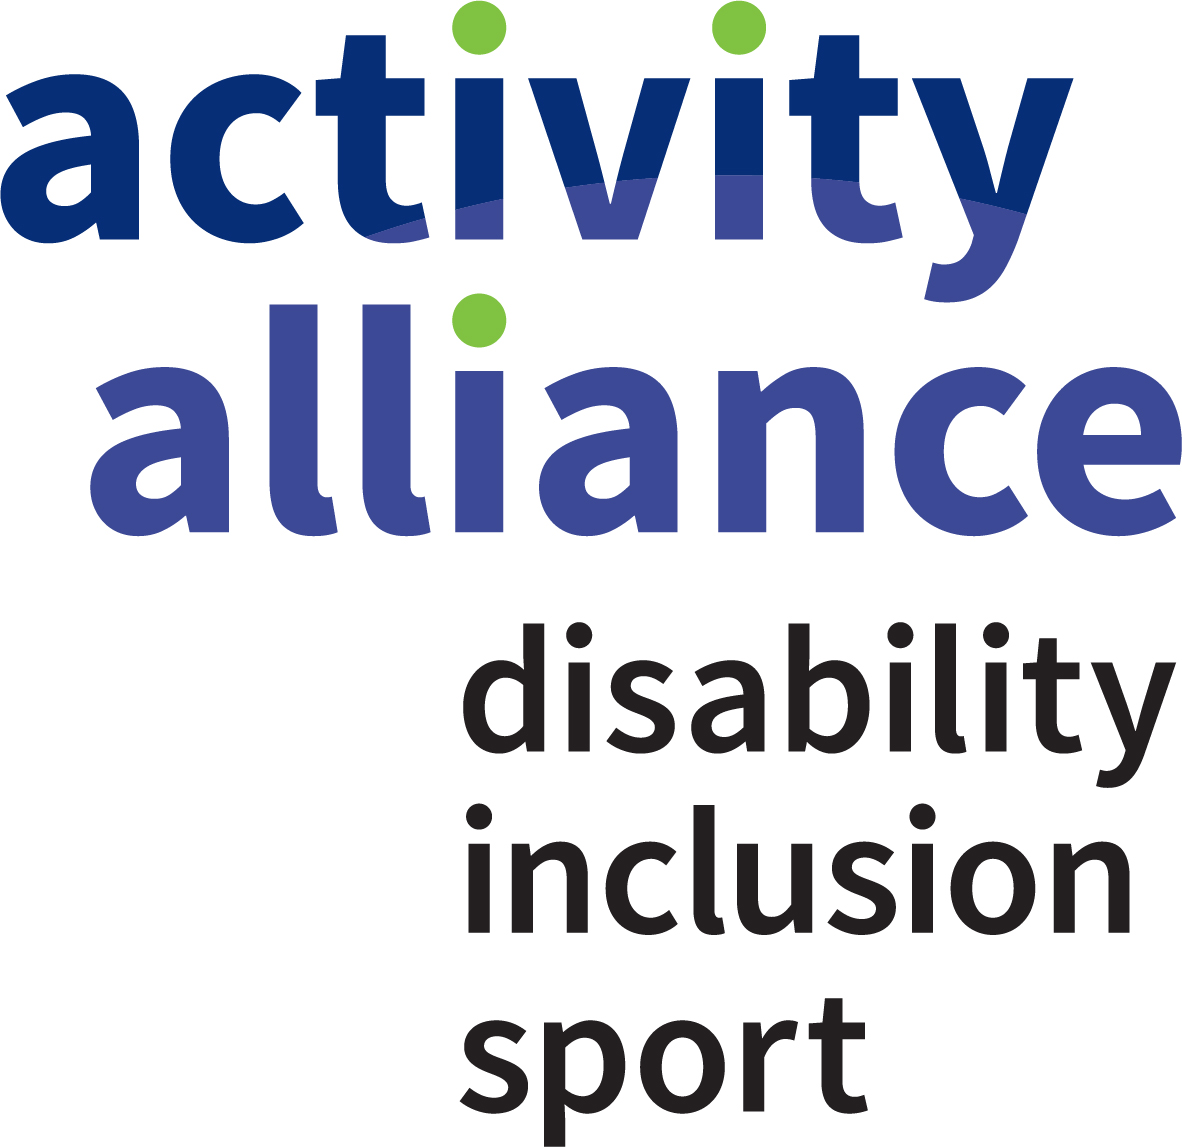 Official ActivityAlliance logo